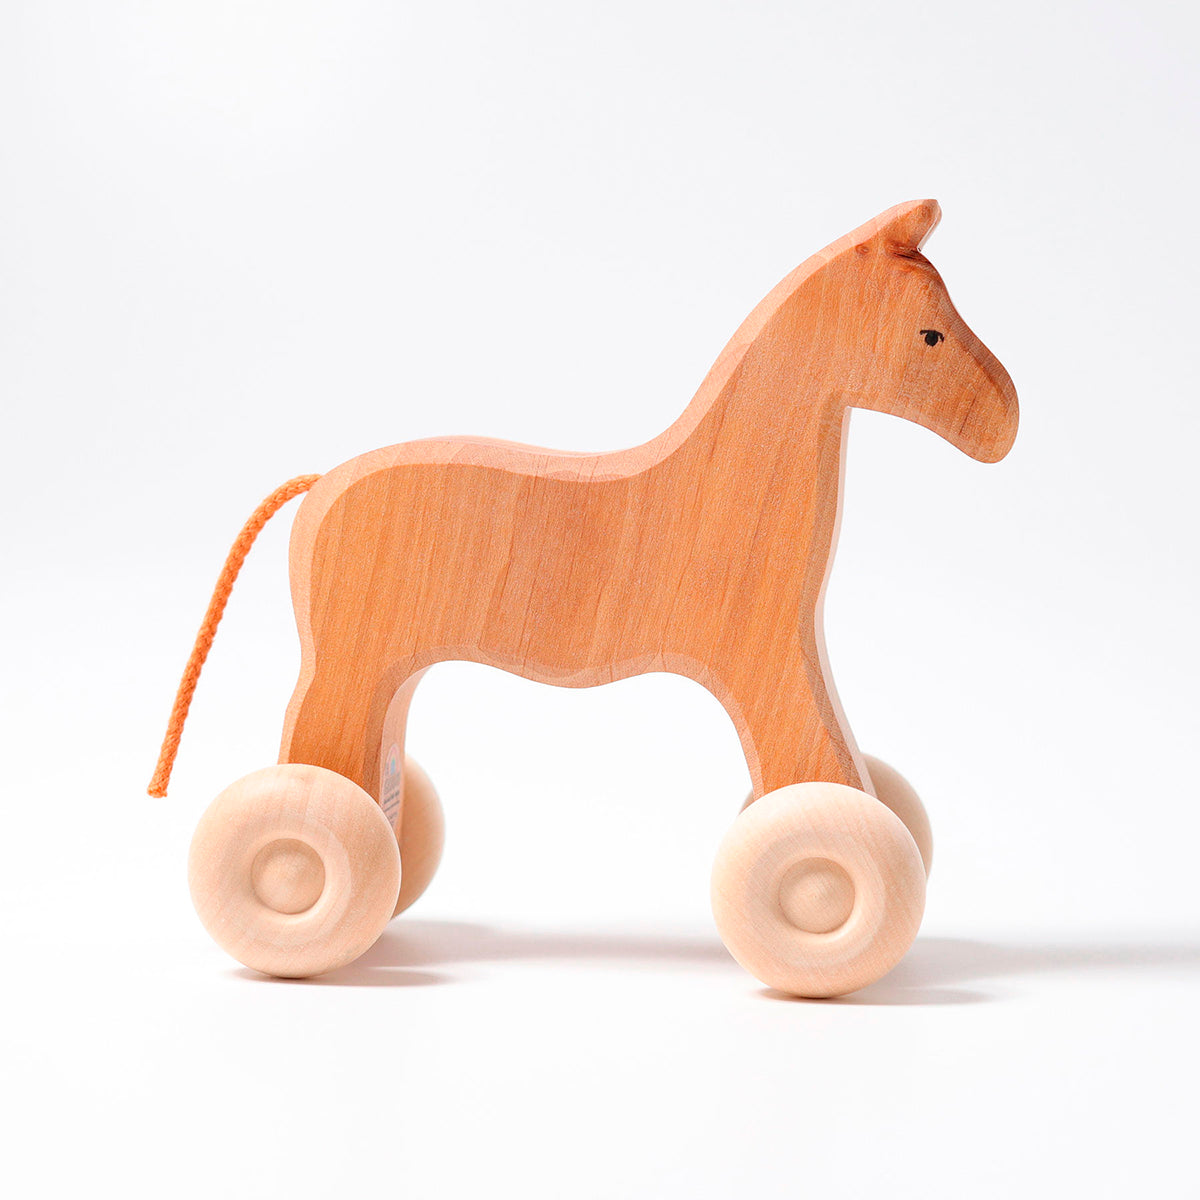 Grimm's horse willy, wood